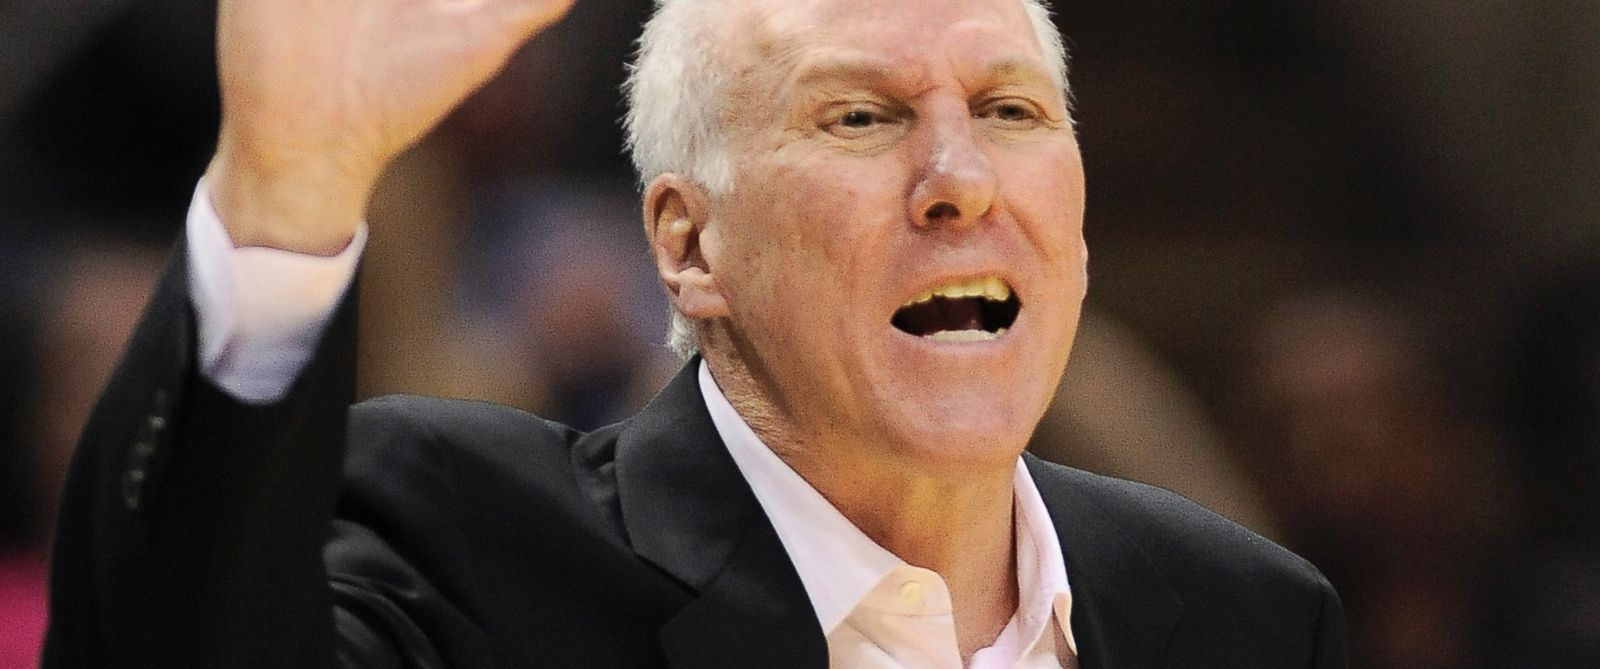 PHOTO: San Antonio Spurs head coach Gregg Popovich yells to an official during an NBA game against the Phoenix Suns, April 11, 2014, in San Antonio.